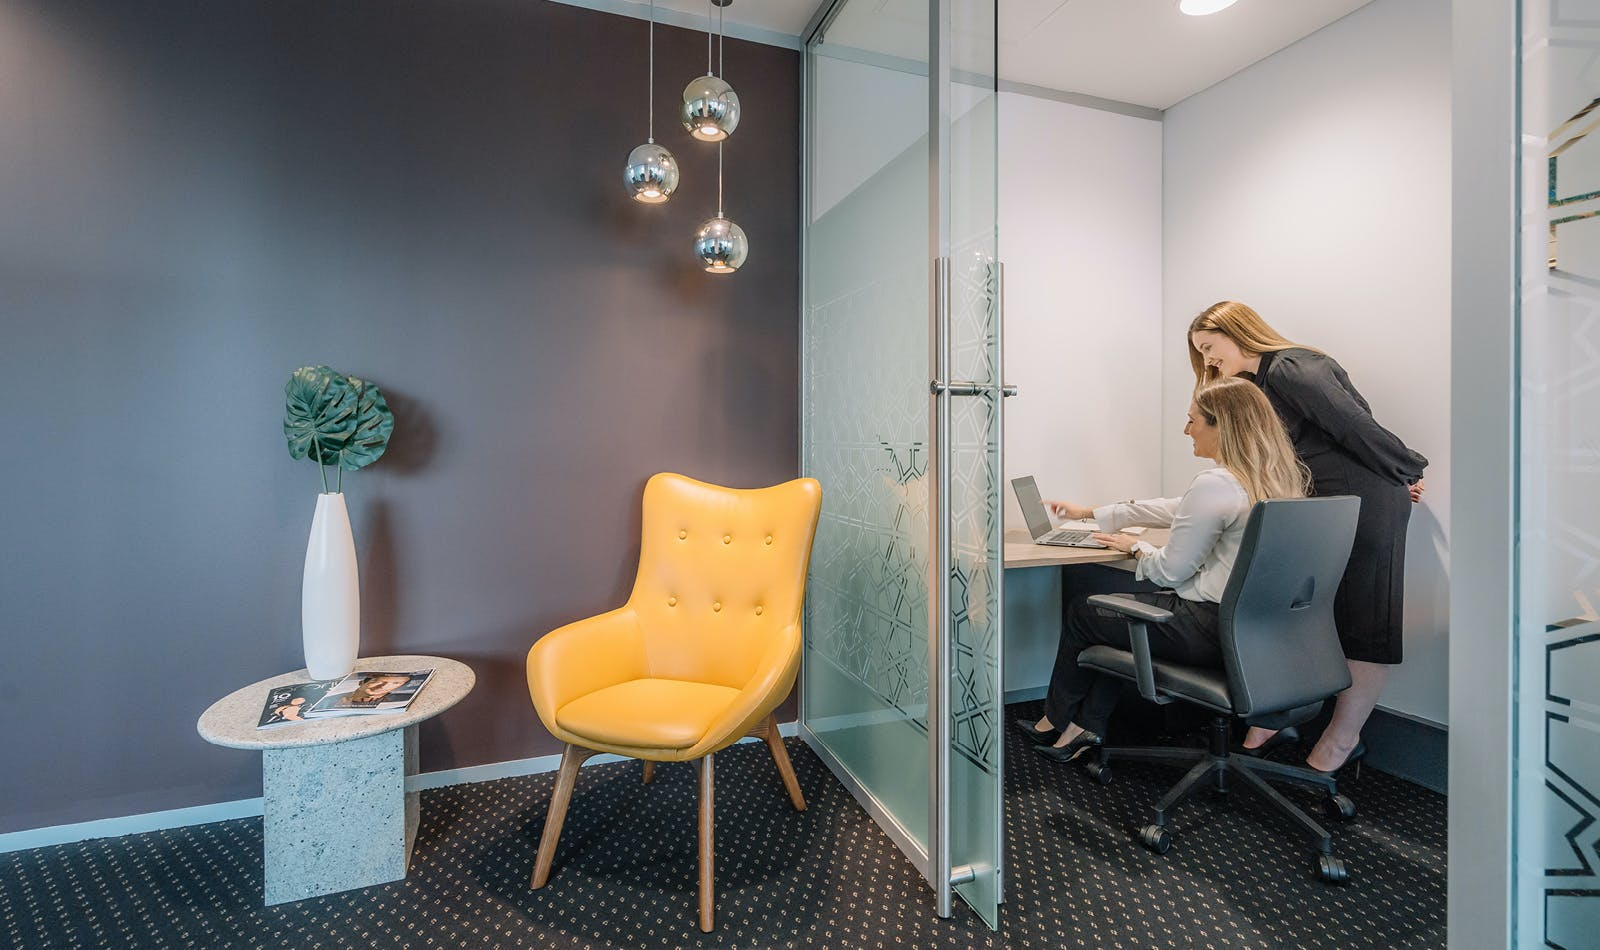 Day Suite, meeting room at Deloitte Building, image 1